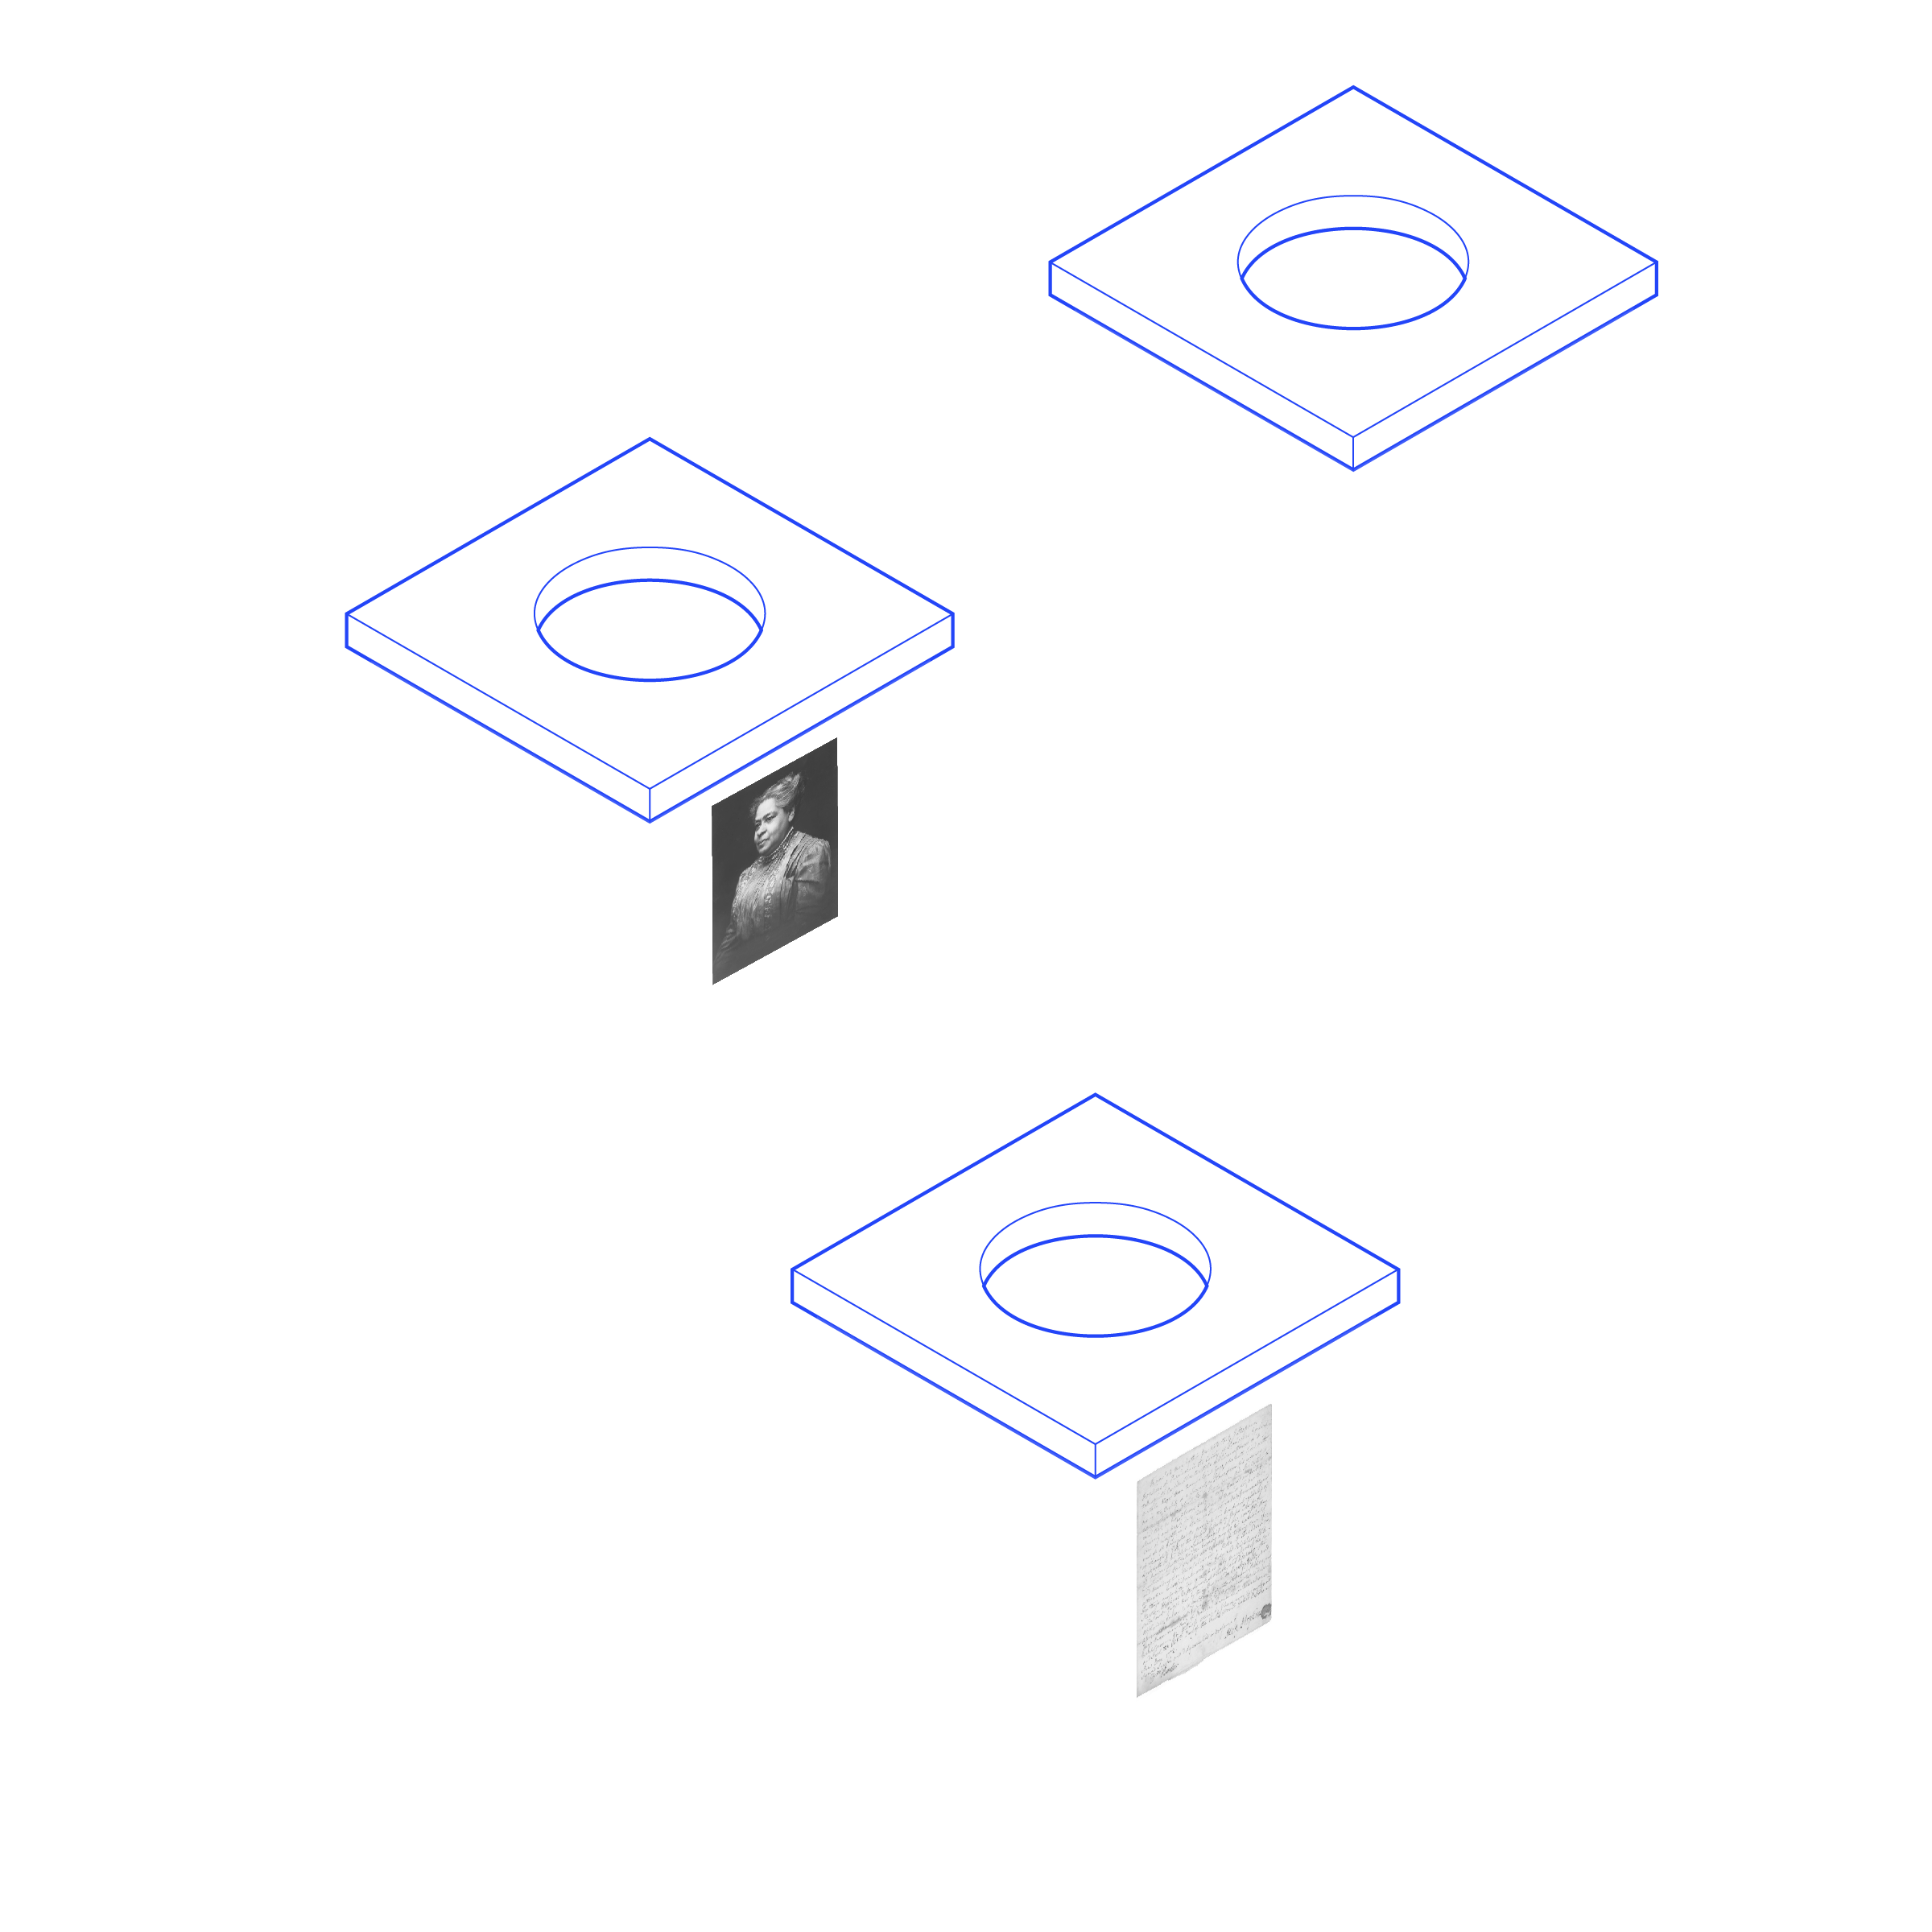 boxes axon [Converted]-01.png